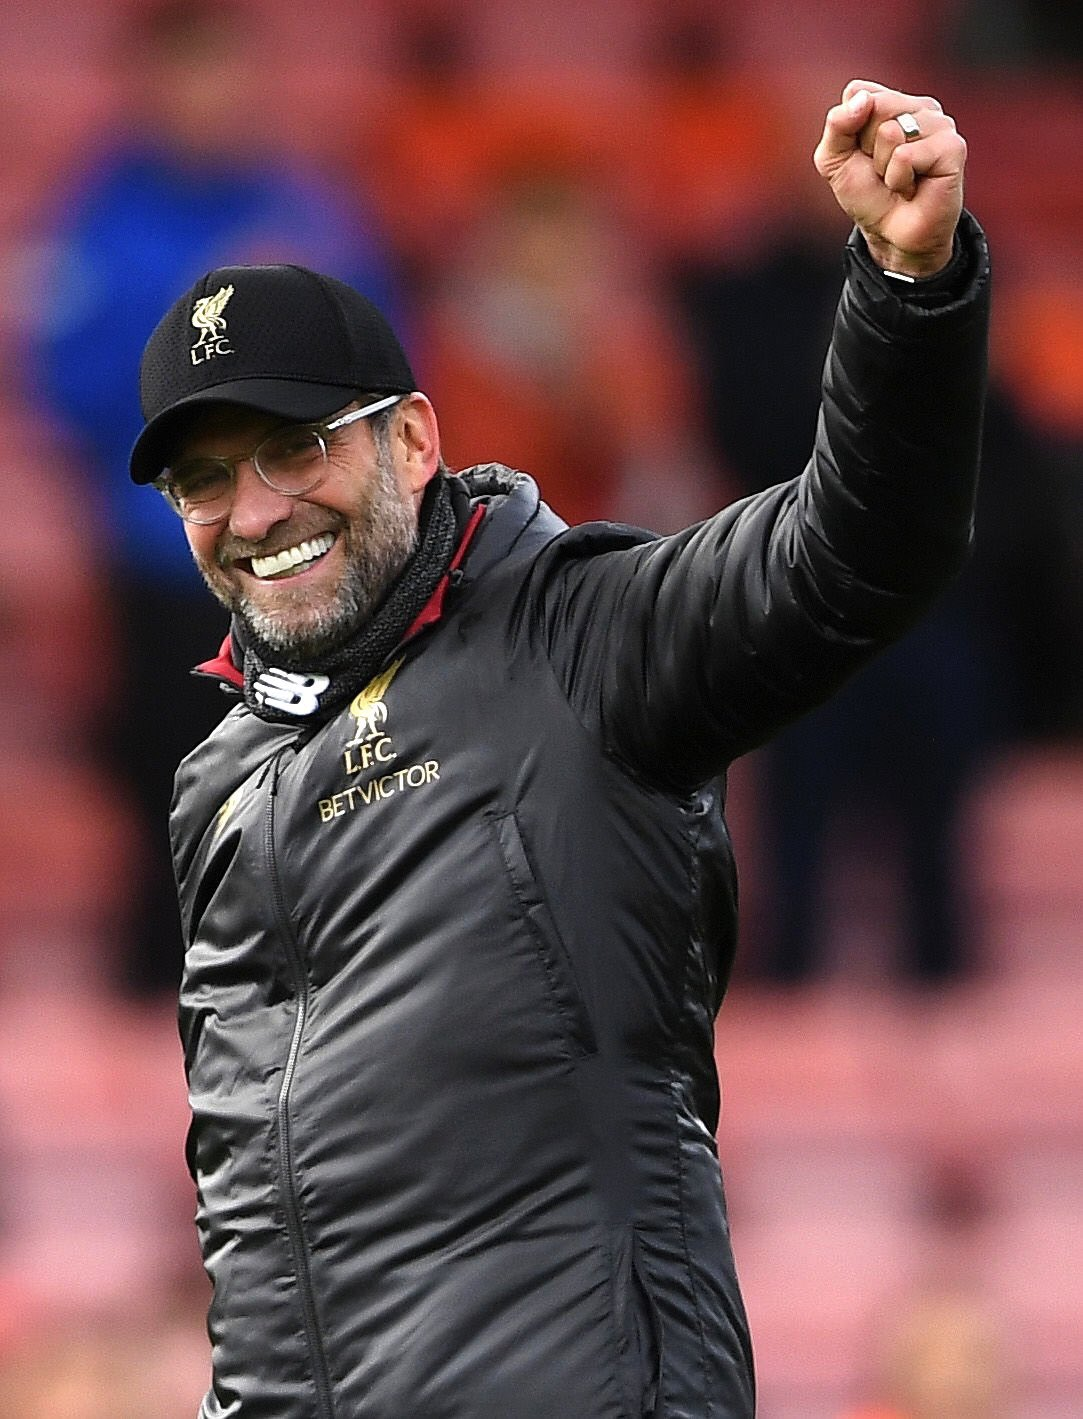 16 games ⚽️  13 wins ✅  3 draws 🤝  0 losses 👀 34 goals scored 🔥 6 goals conceded 👊  1st place 👌  What. a. start. 🔴 https://t.co/V1QpIzGrlb